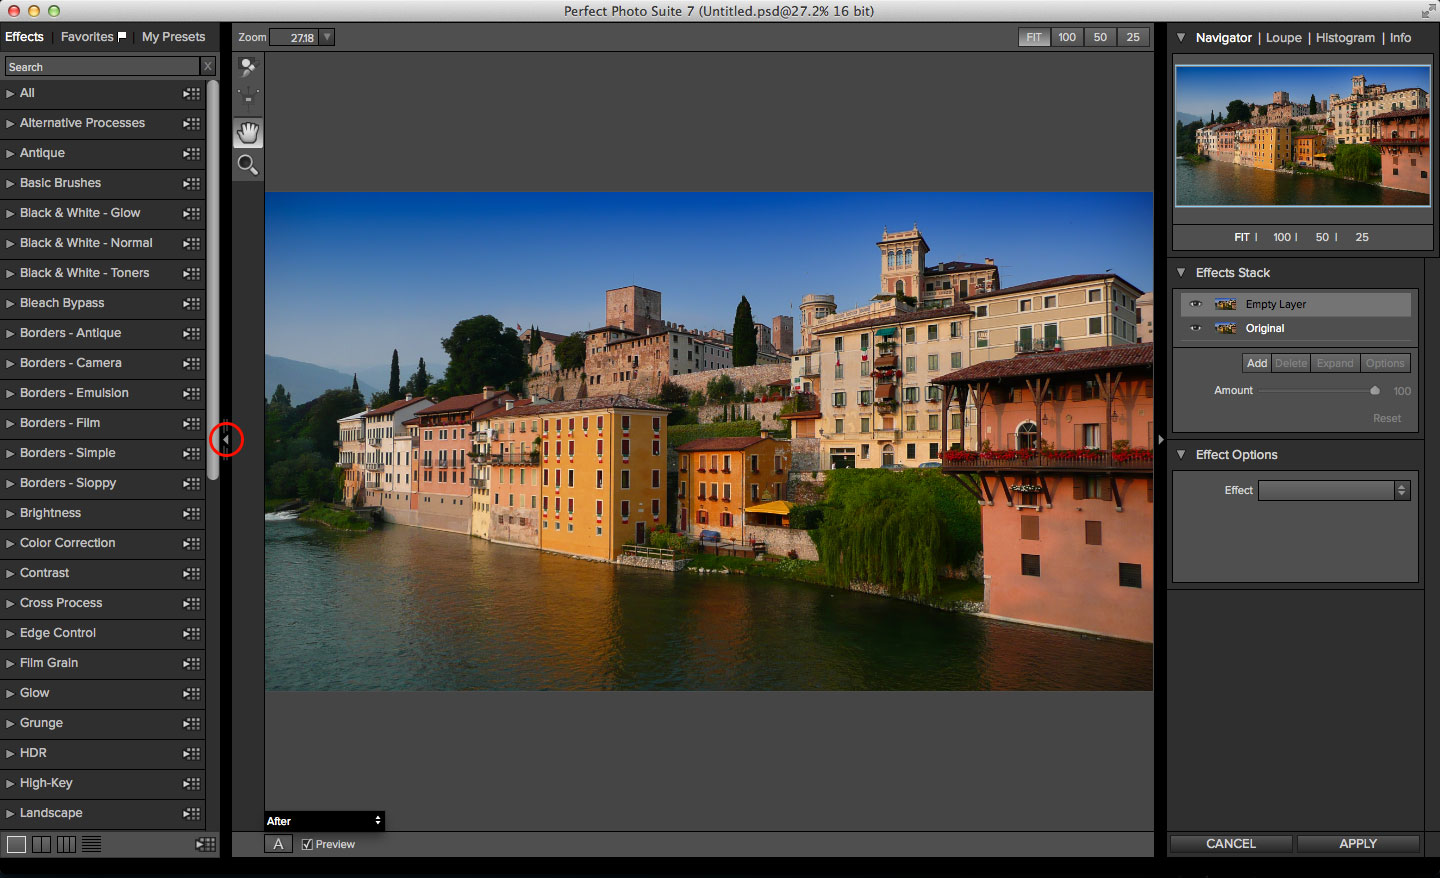 Perfect Effects blending modes